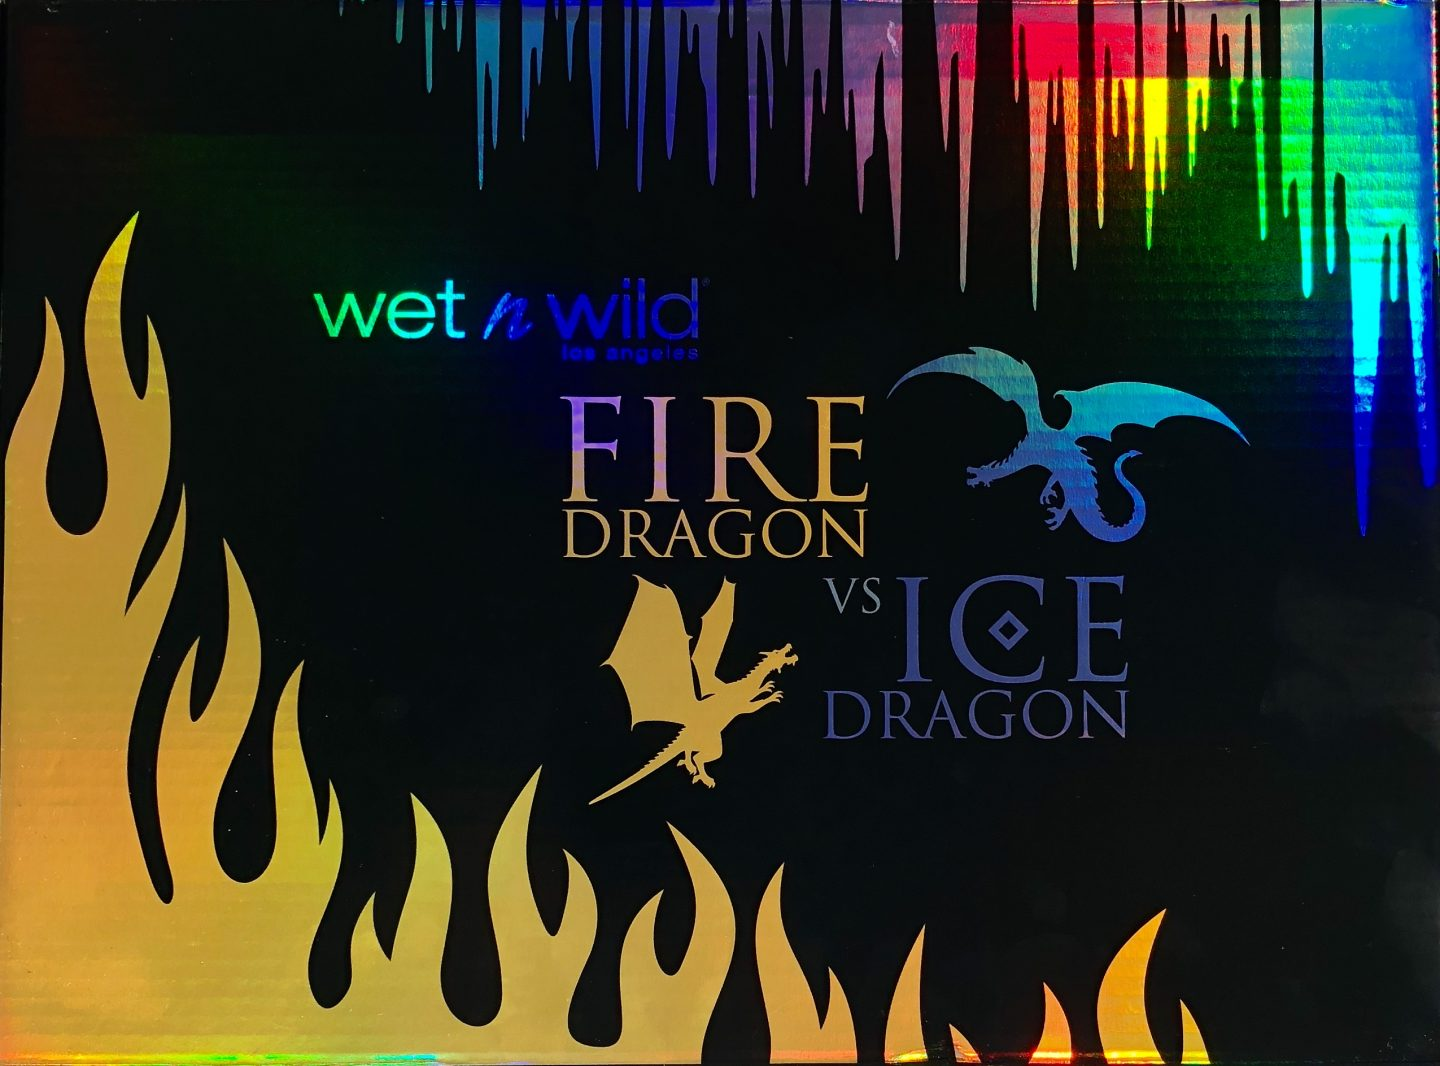 Wet N Wild Fire Dragon vs Ice Dragon